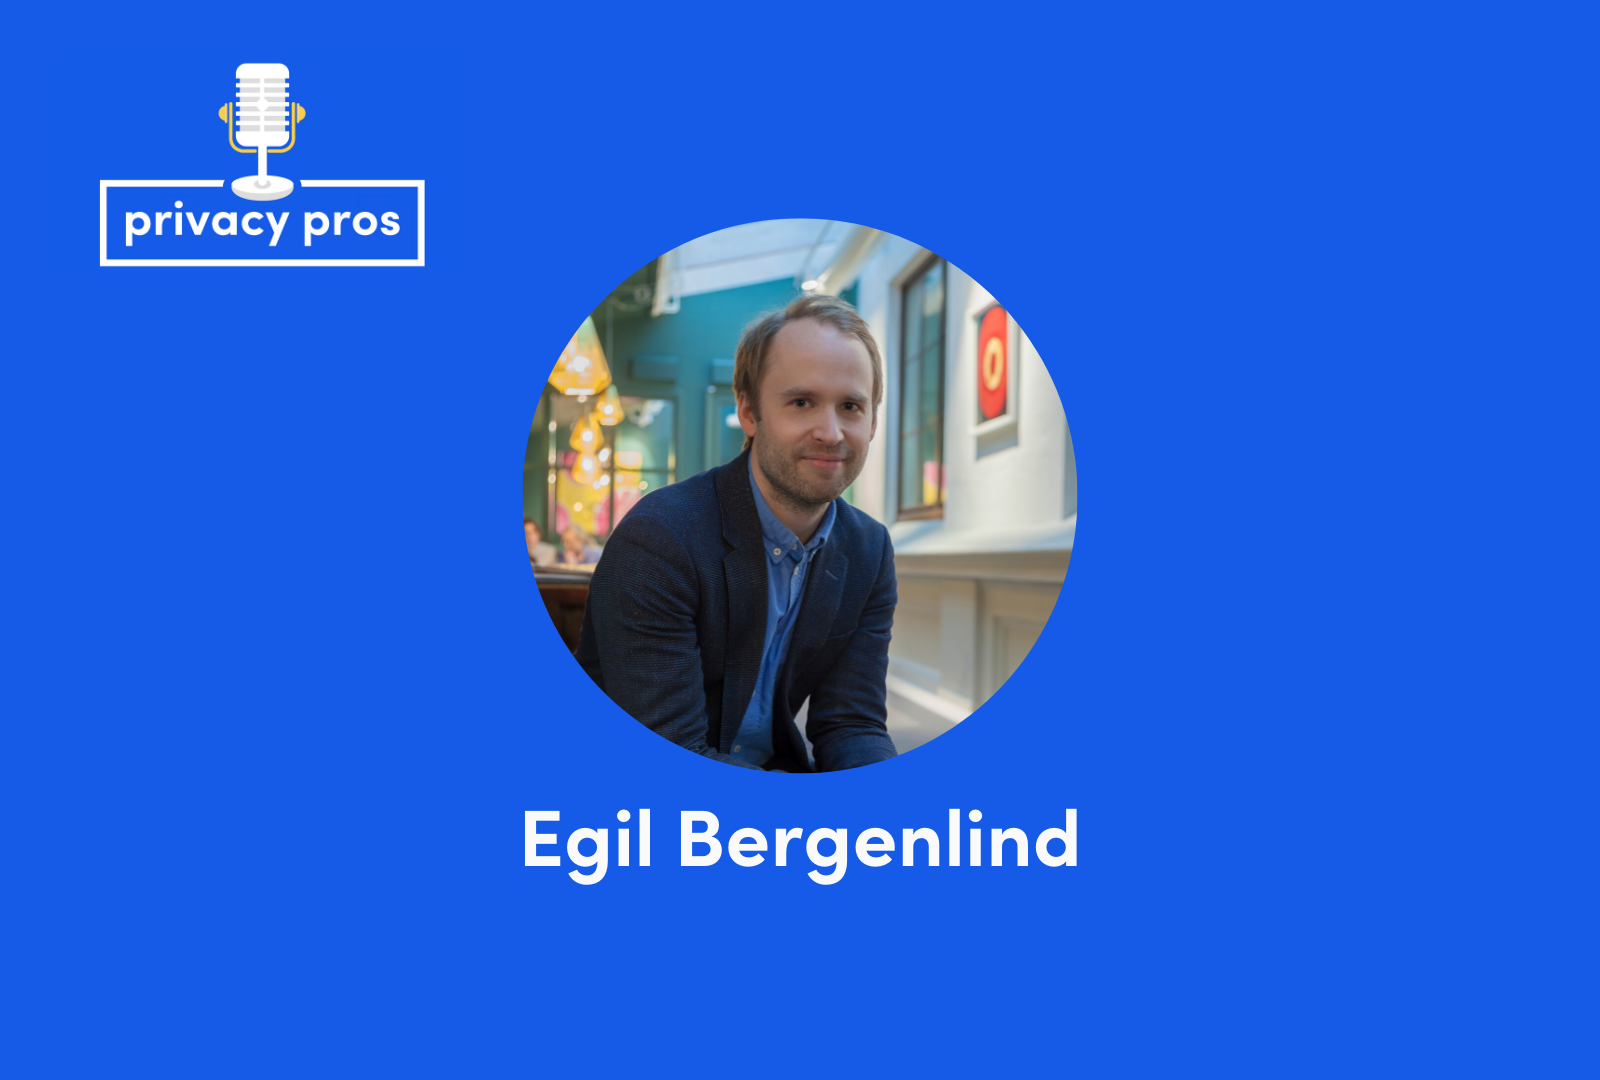 Interview with Egil Bergenlind, founder of DPOrganizer